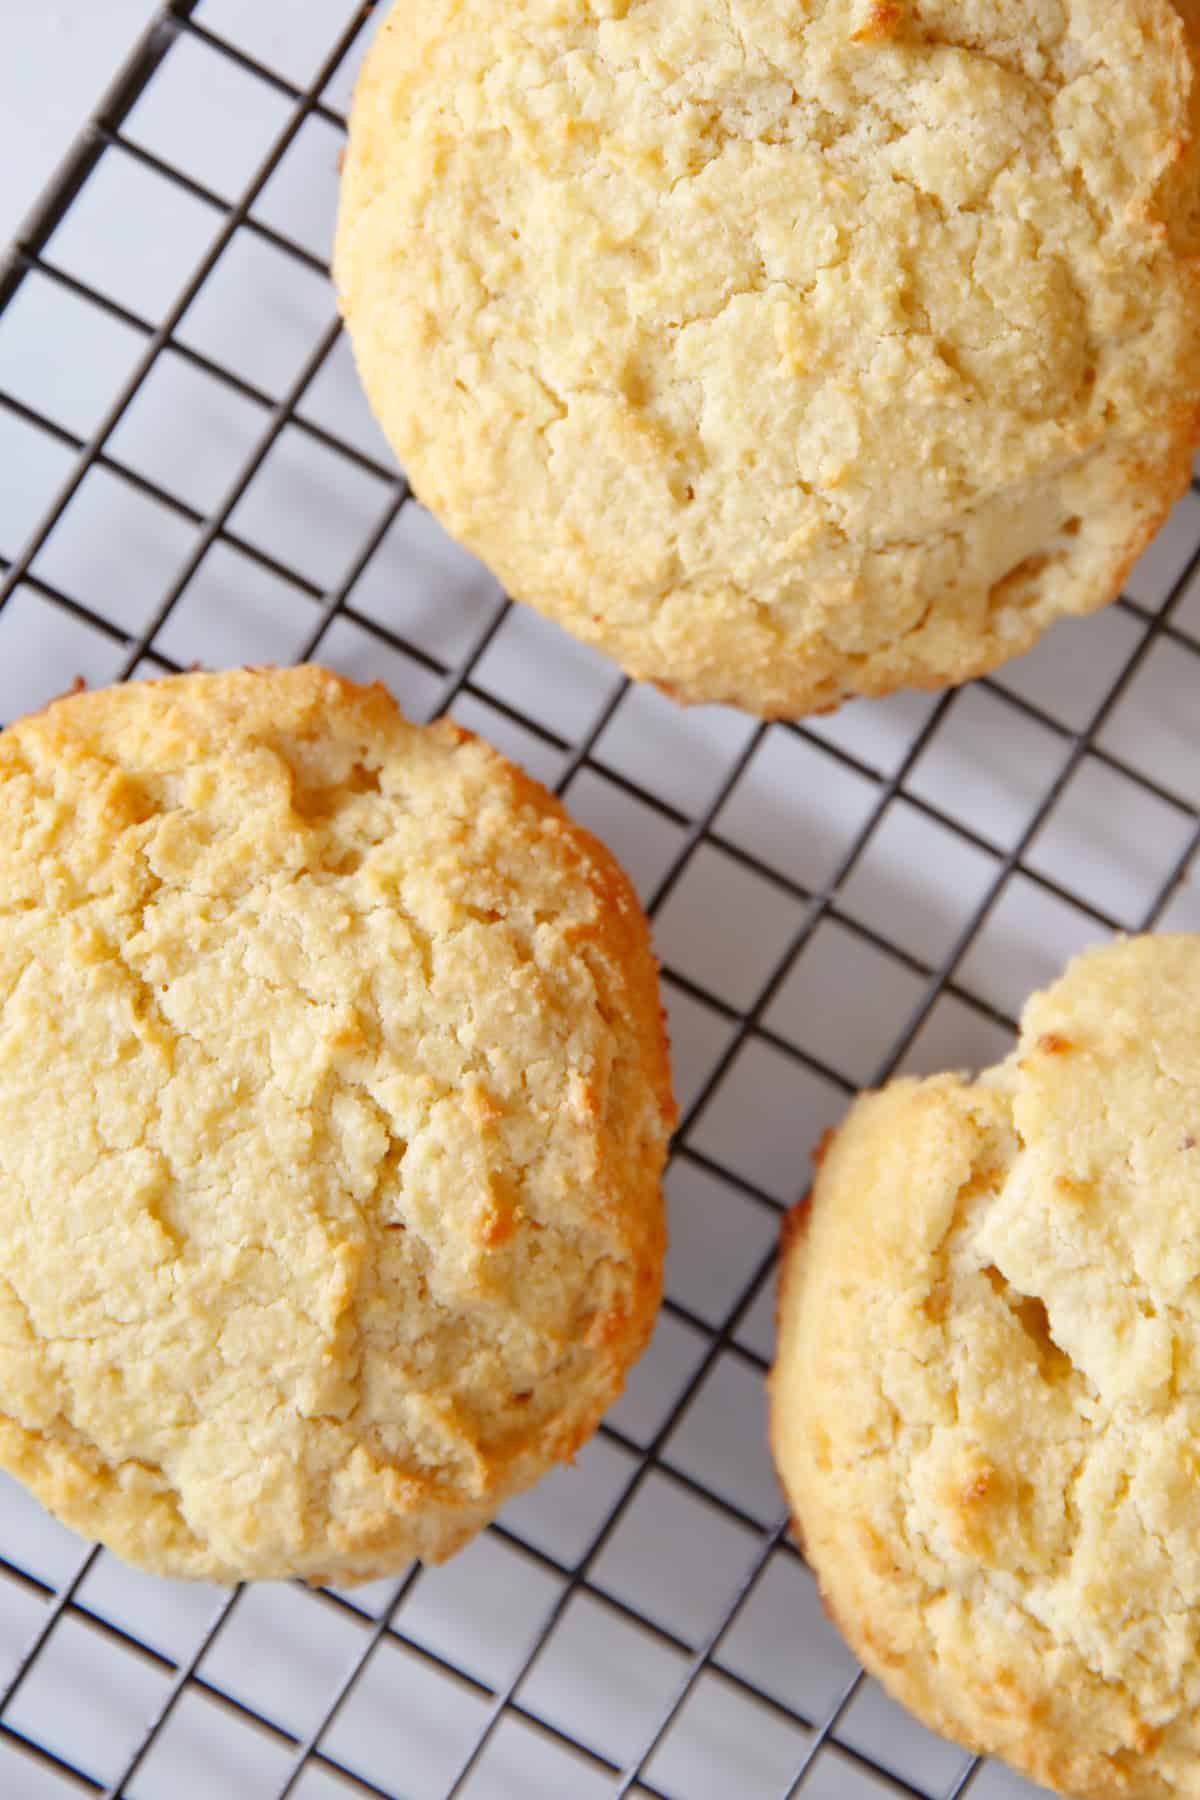 gluten free biscuit recipe cooked and cooling on a rack